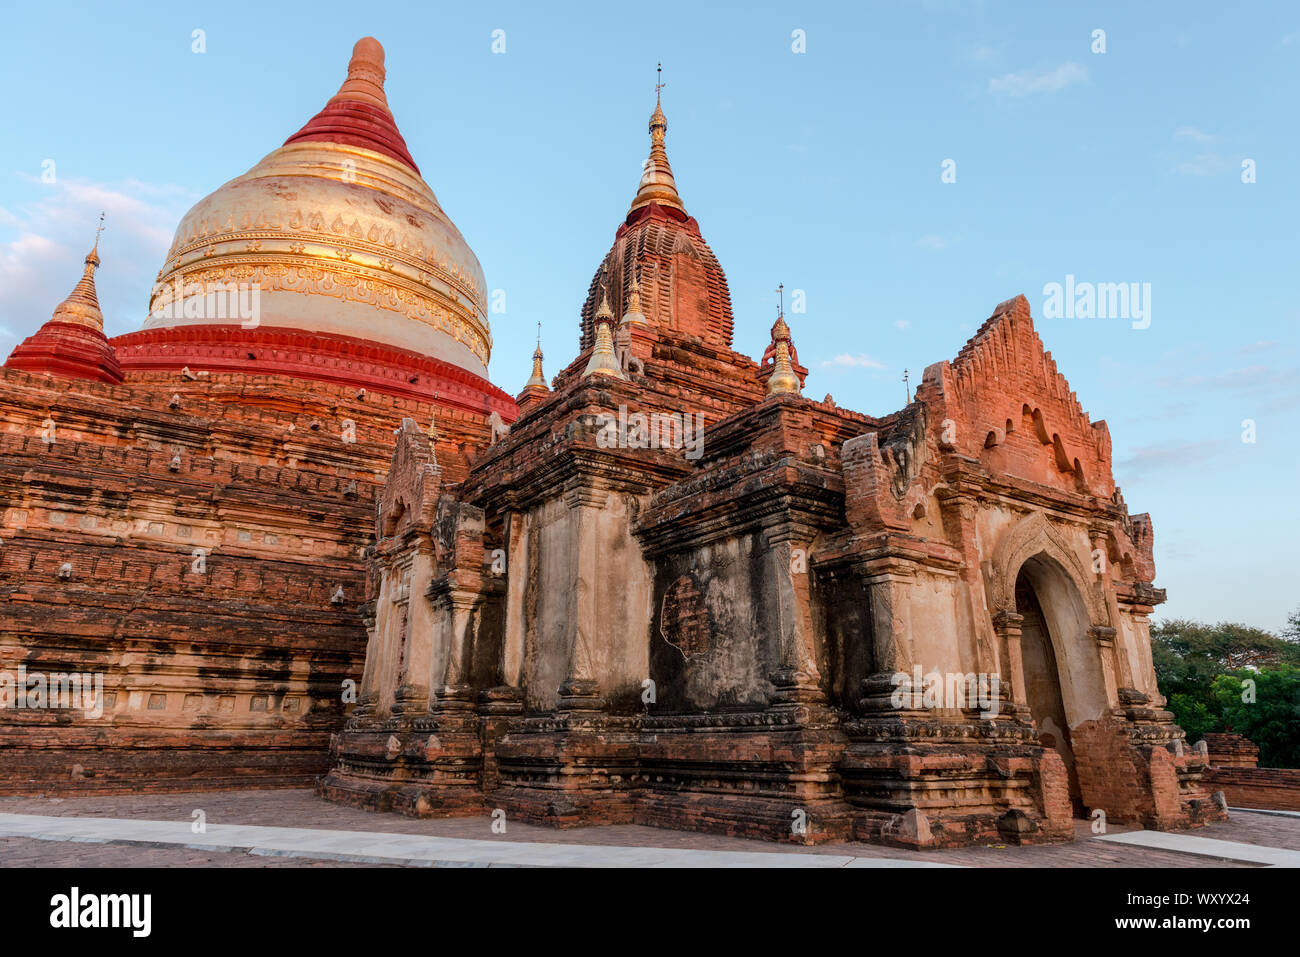 Wide angle picture of the architectonic Dhammayazika Temple, an amazing buddhist pagoda in Bagan in Myanmar Stock Photo